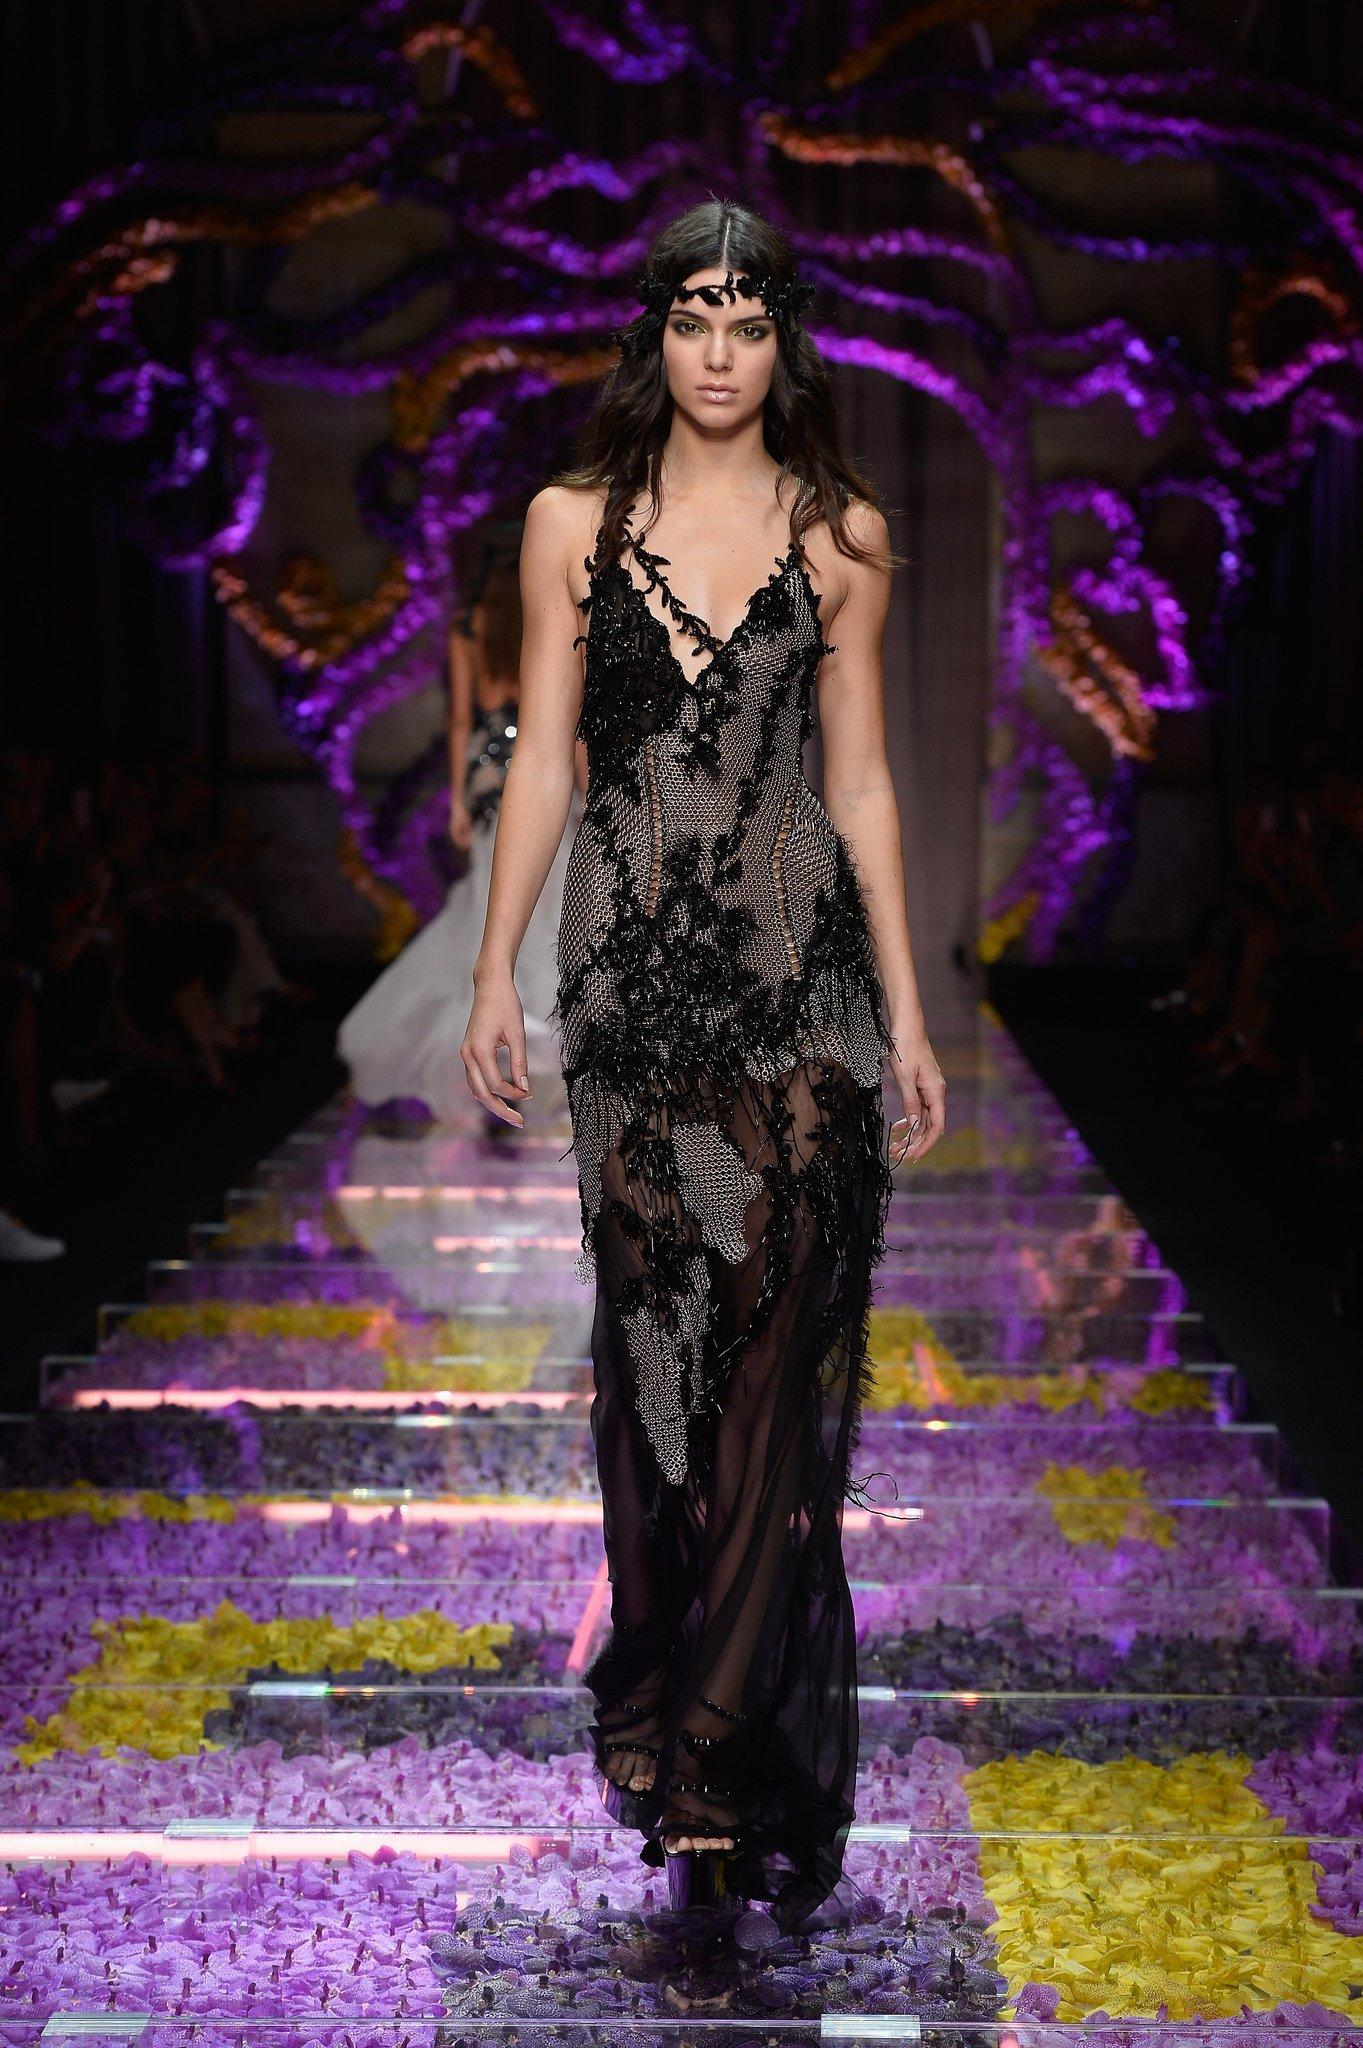 Kendall Jenner walks the runway during the Atelier Versace show.